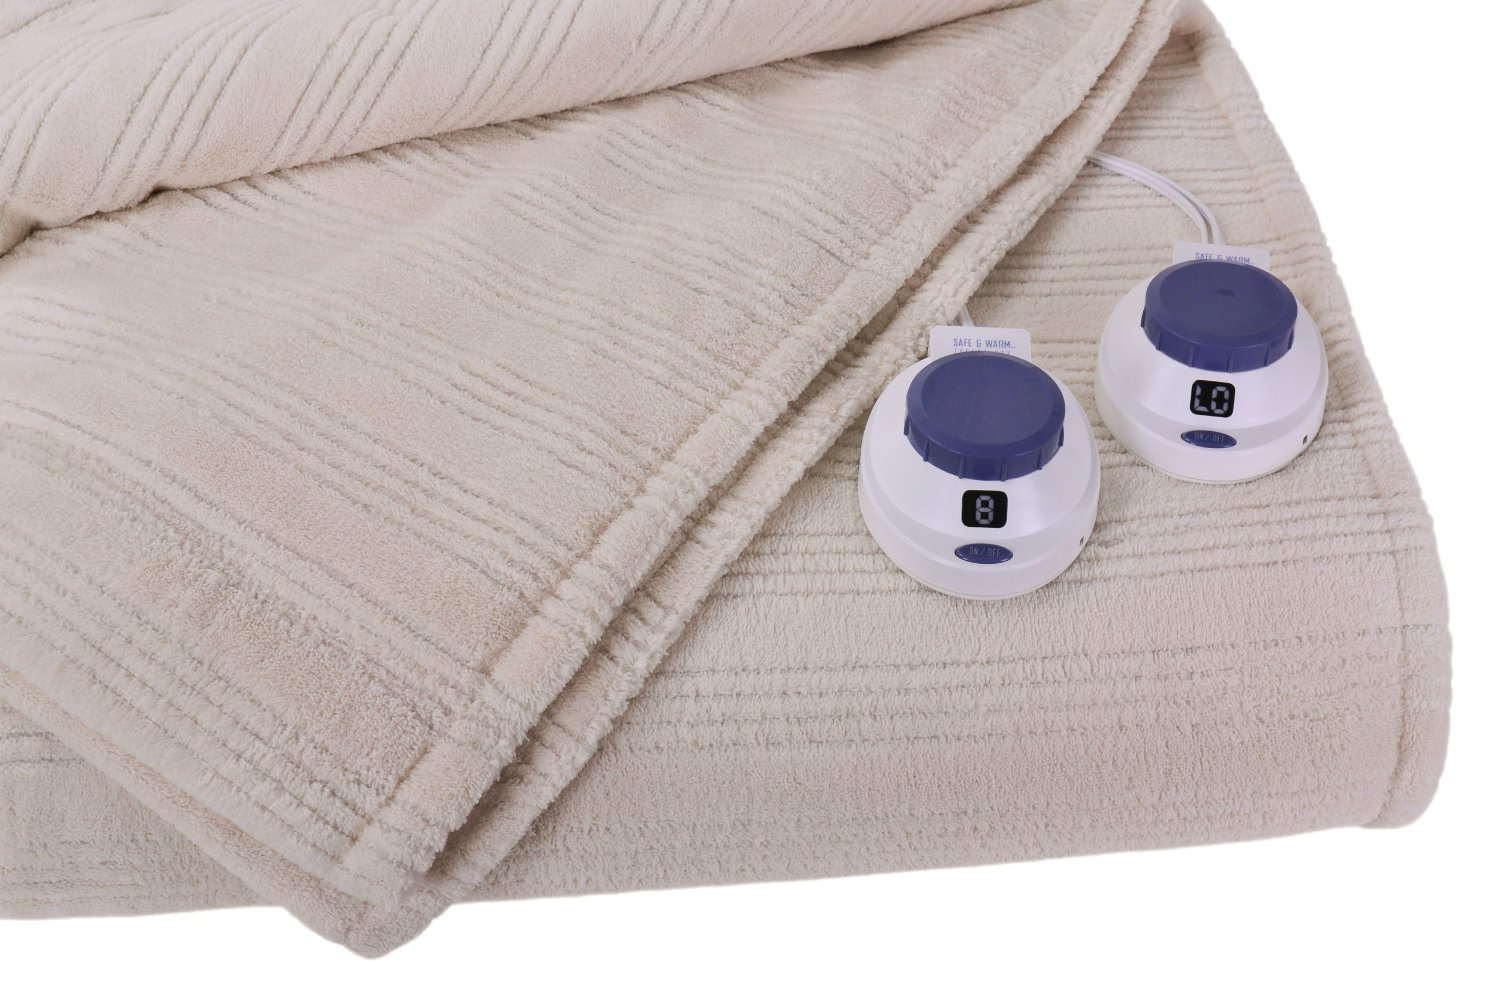 9. Dreamland Intelliheat Blanket